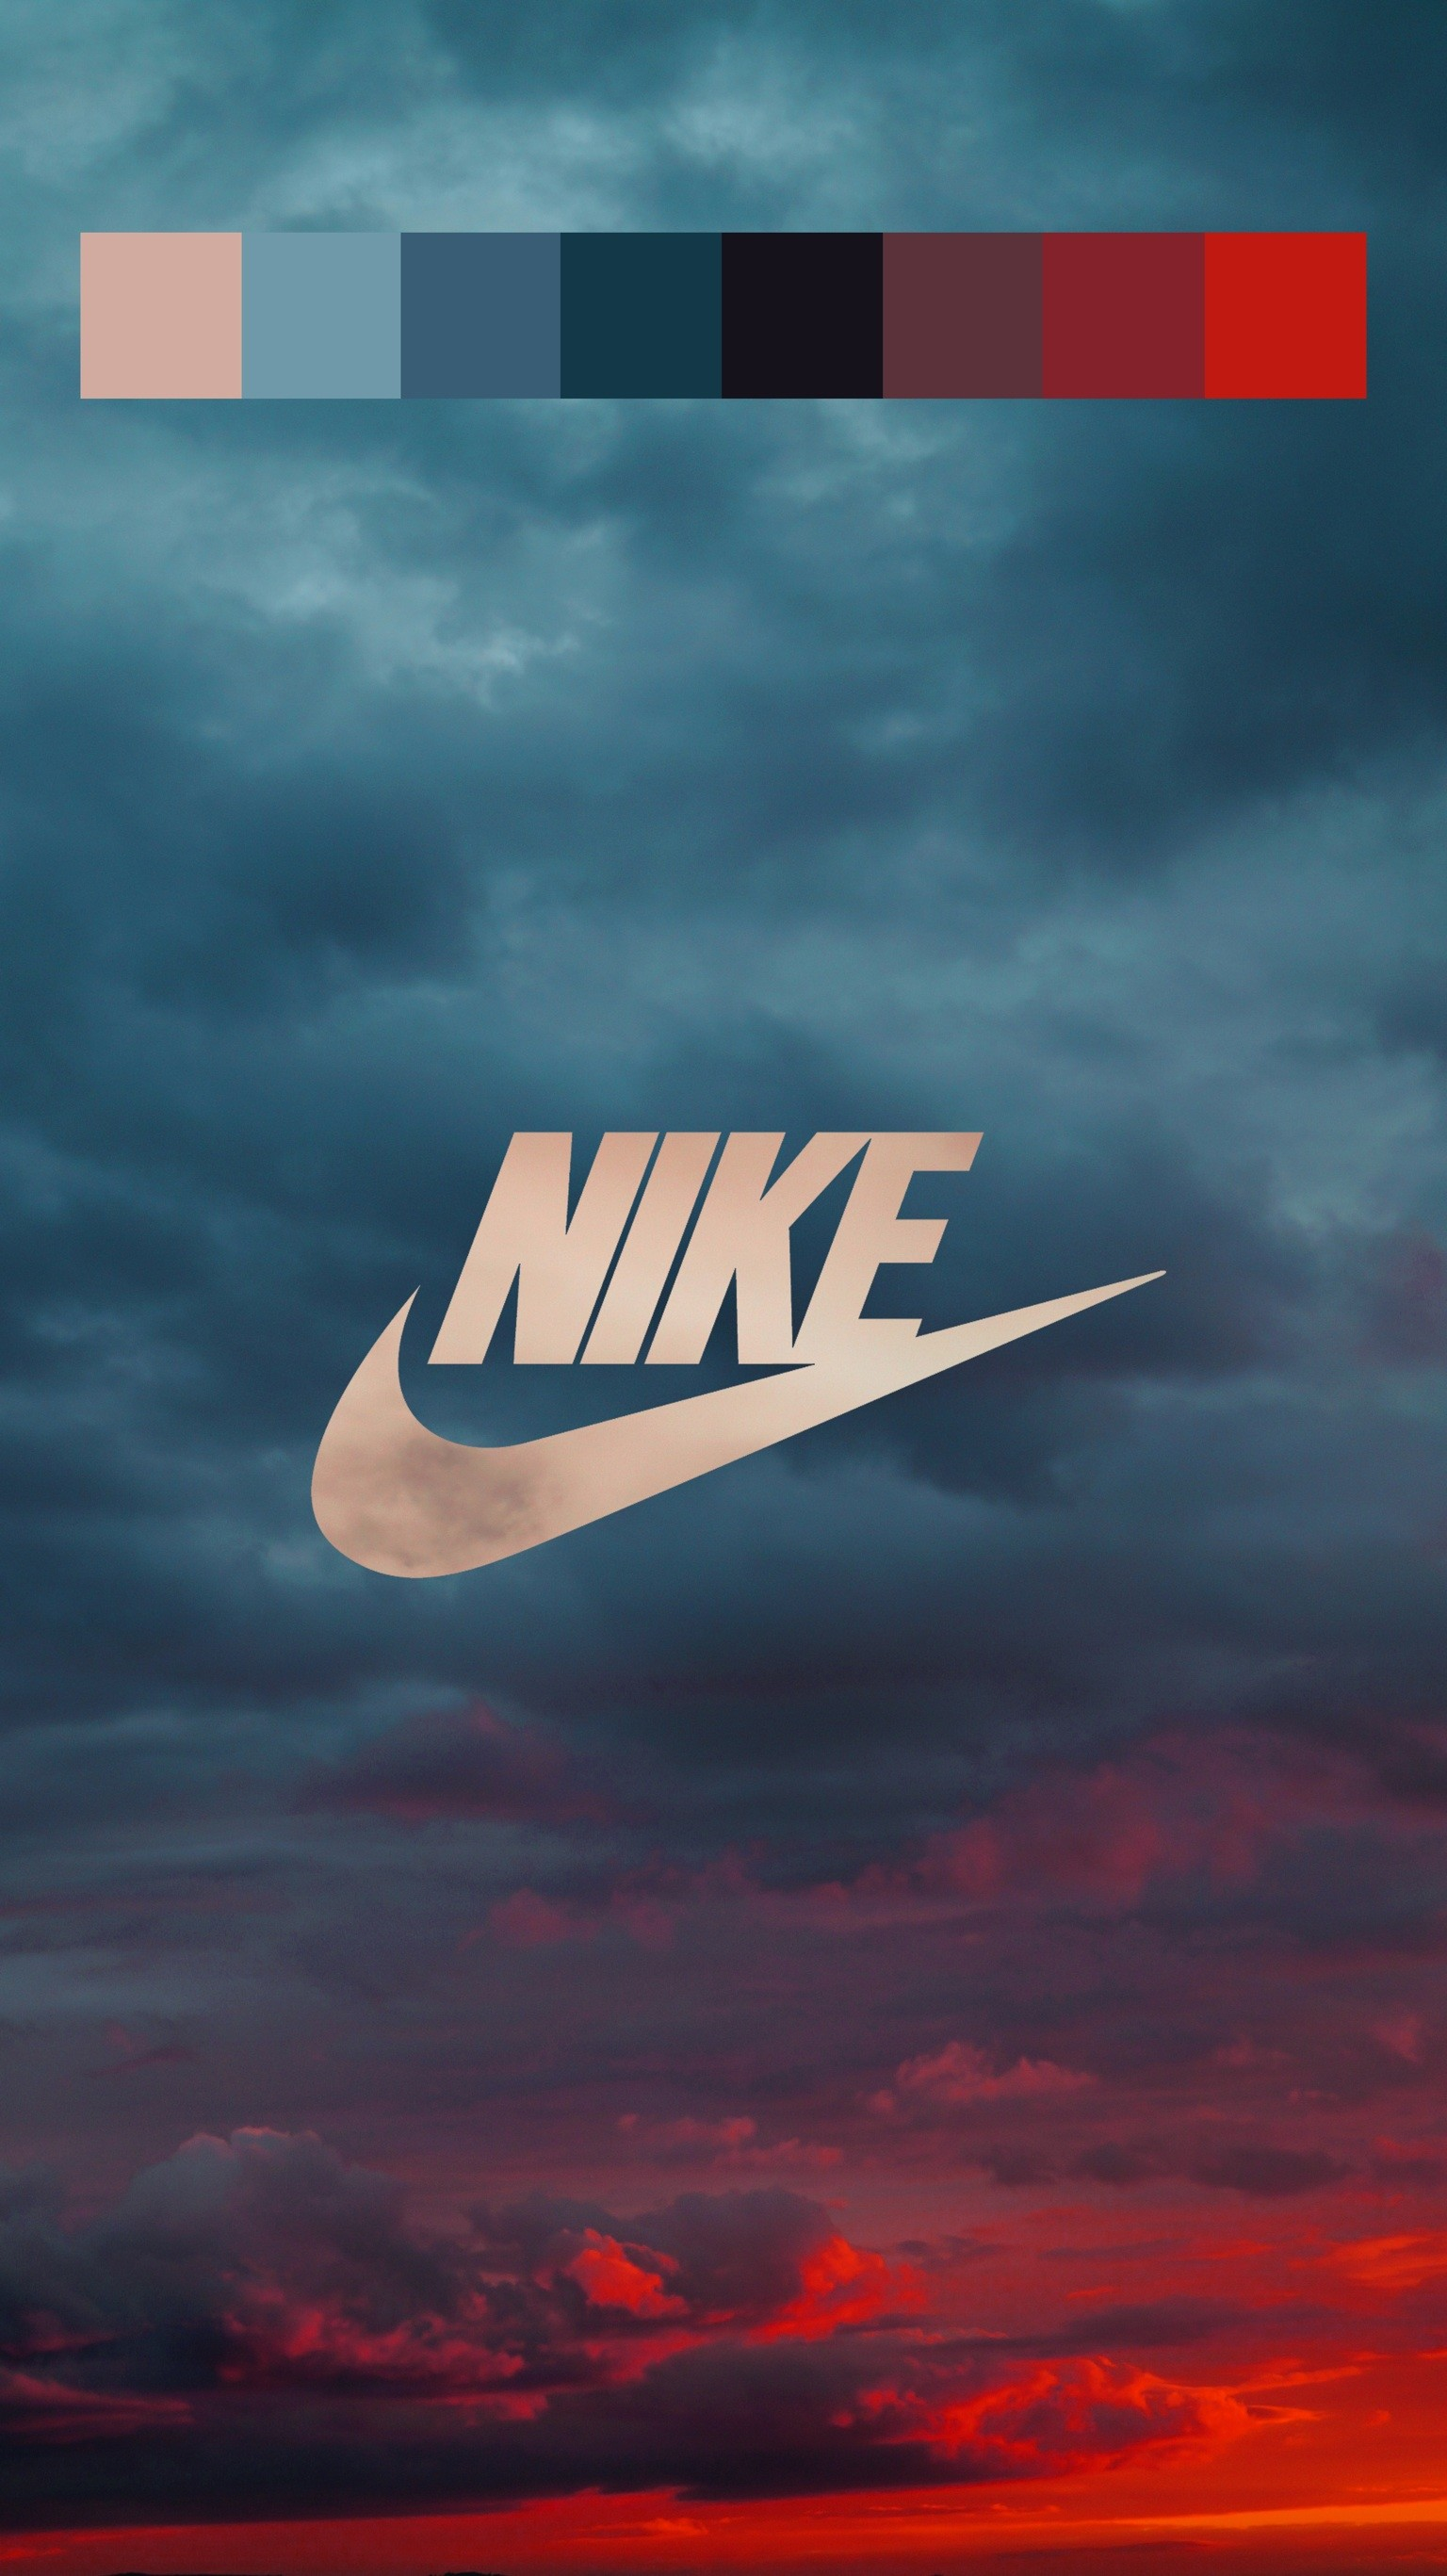 new nike wallpaper 59 images